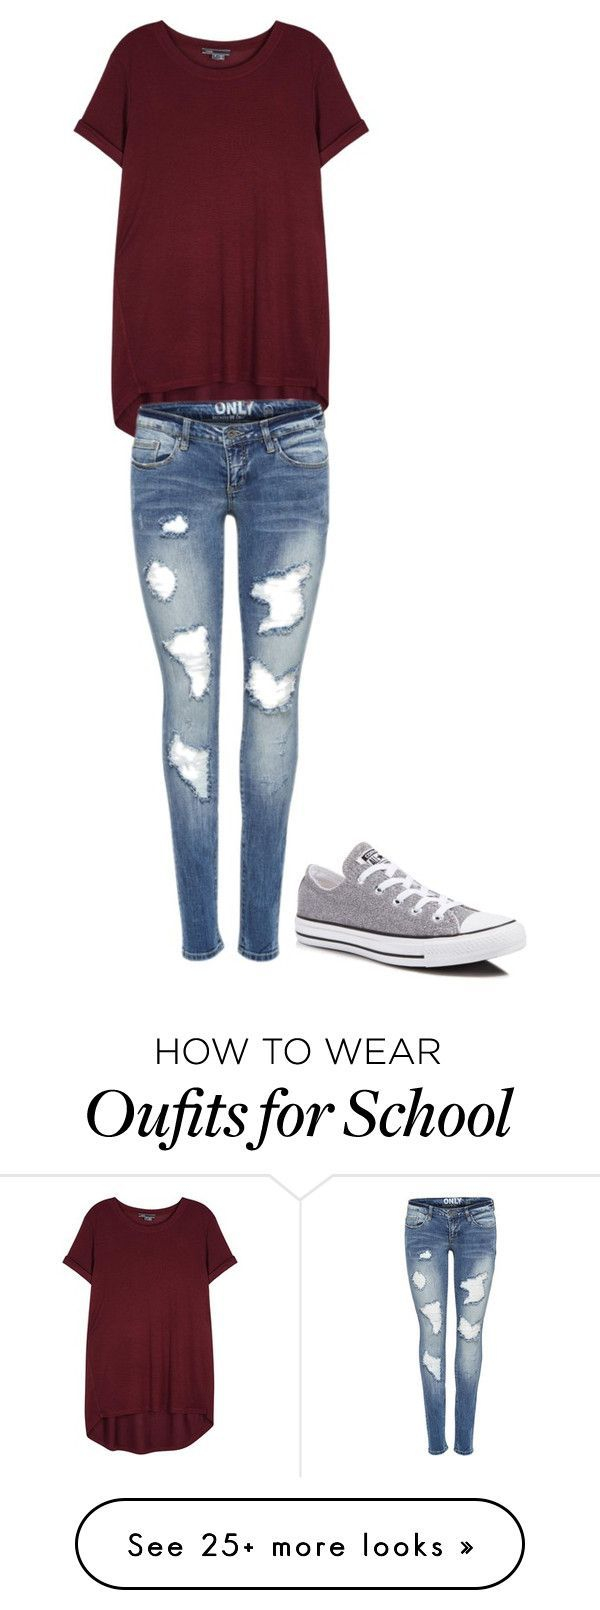 17137 best Cute u0026 simple outfits images on Pinterest ...